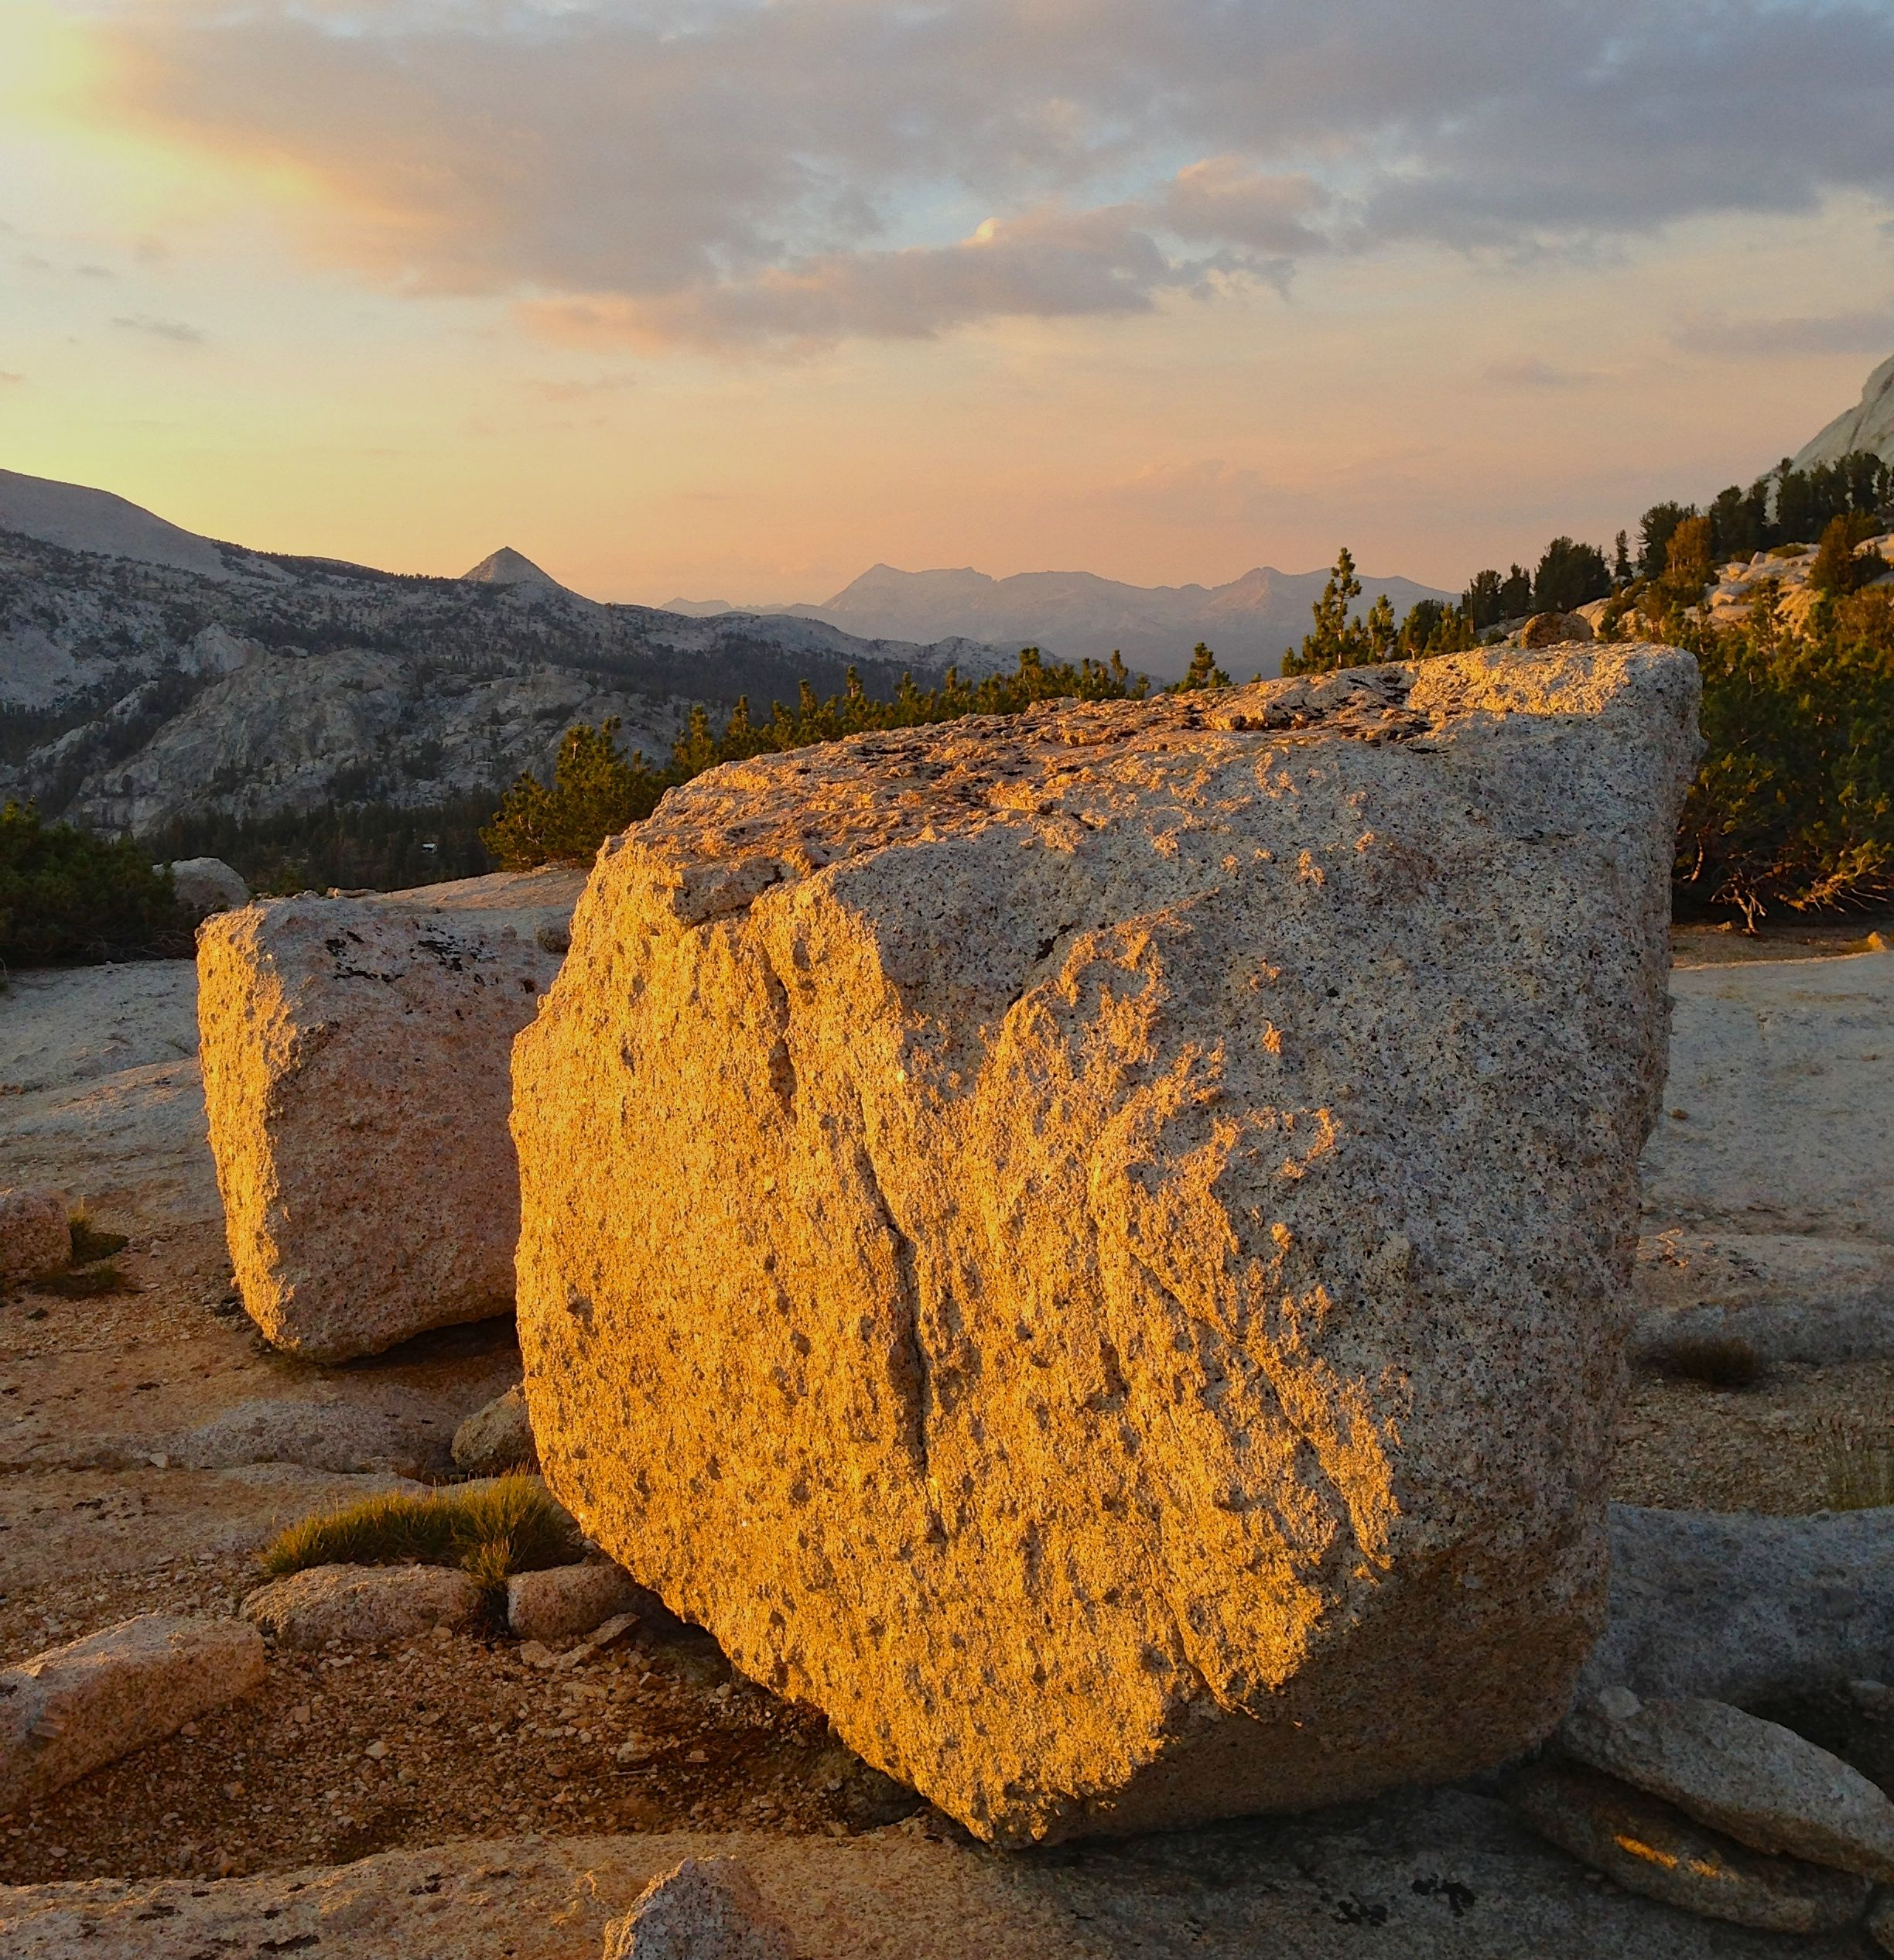 Sunset shines golden light onto boulders near Vogelsang Lake, Yosemite National park.  Photo taken with an iPhone 5 on my Sierra High Route hike in summer 2013.